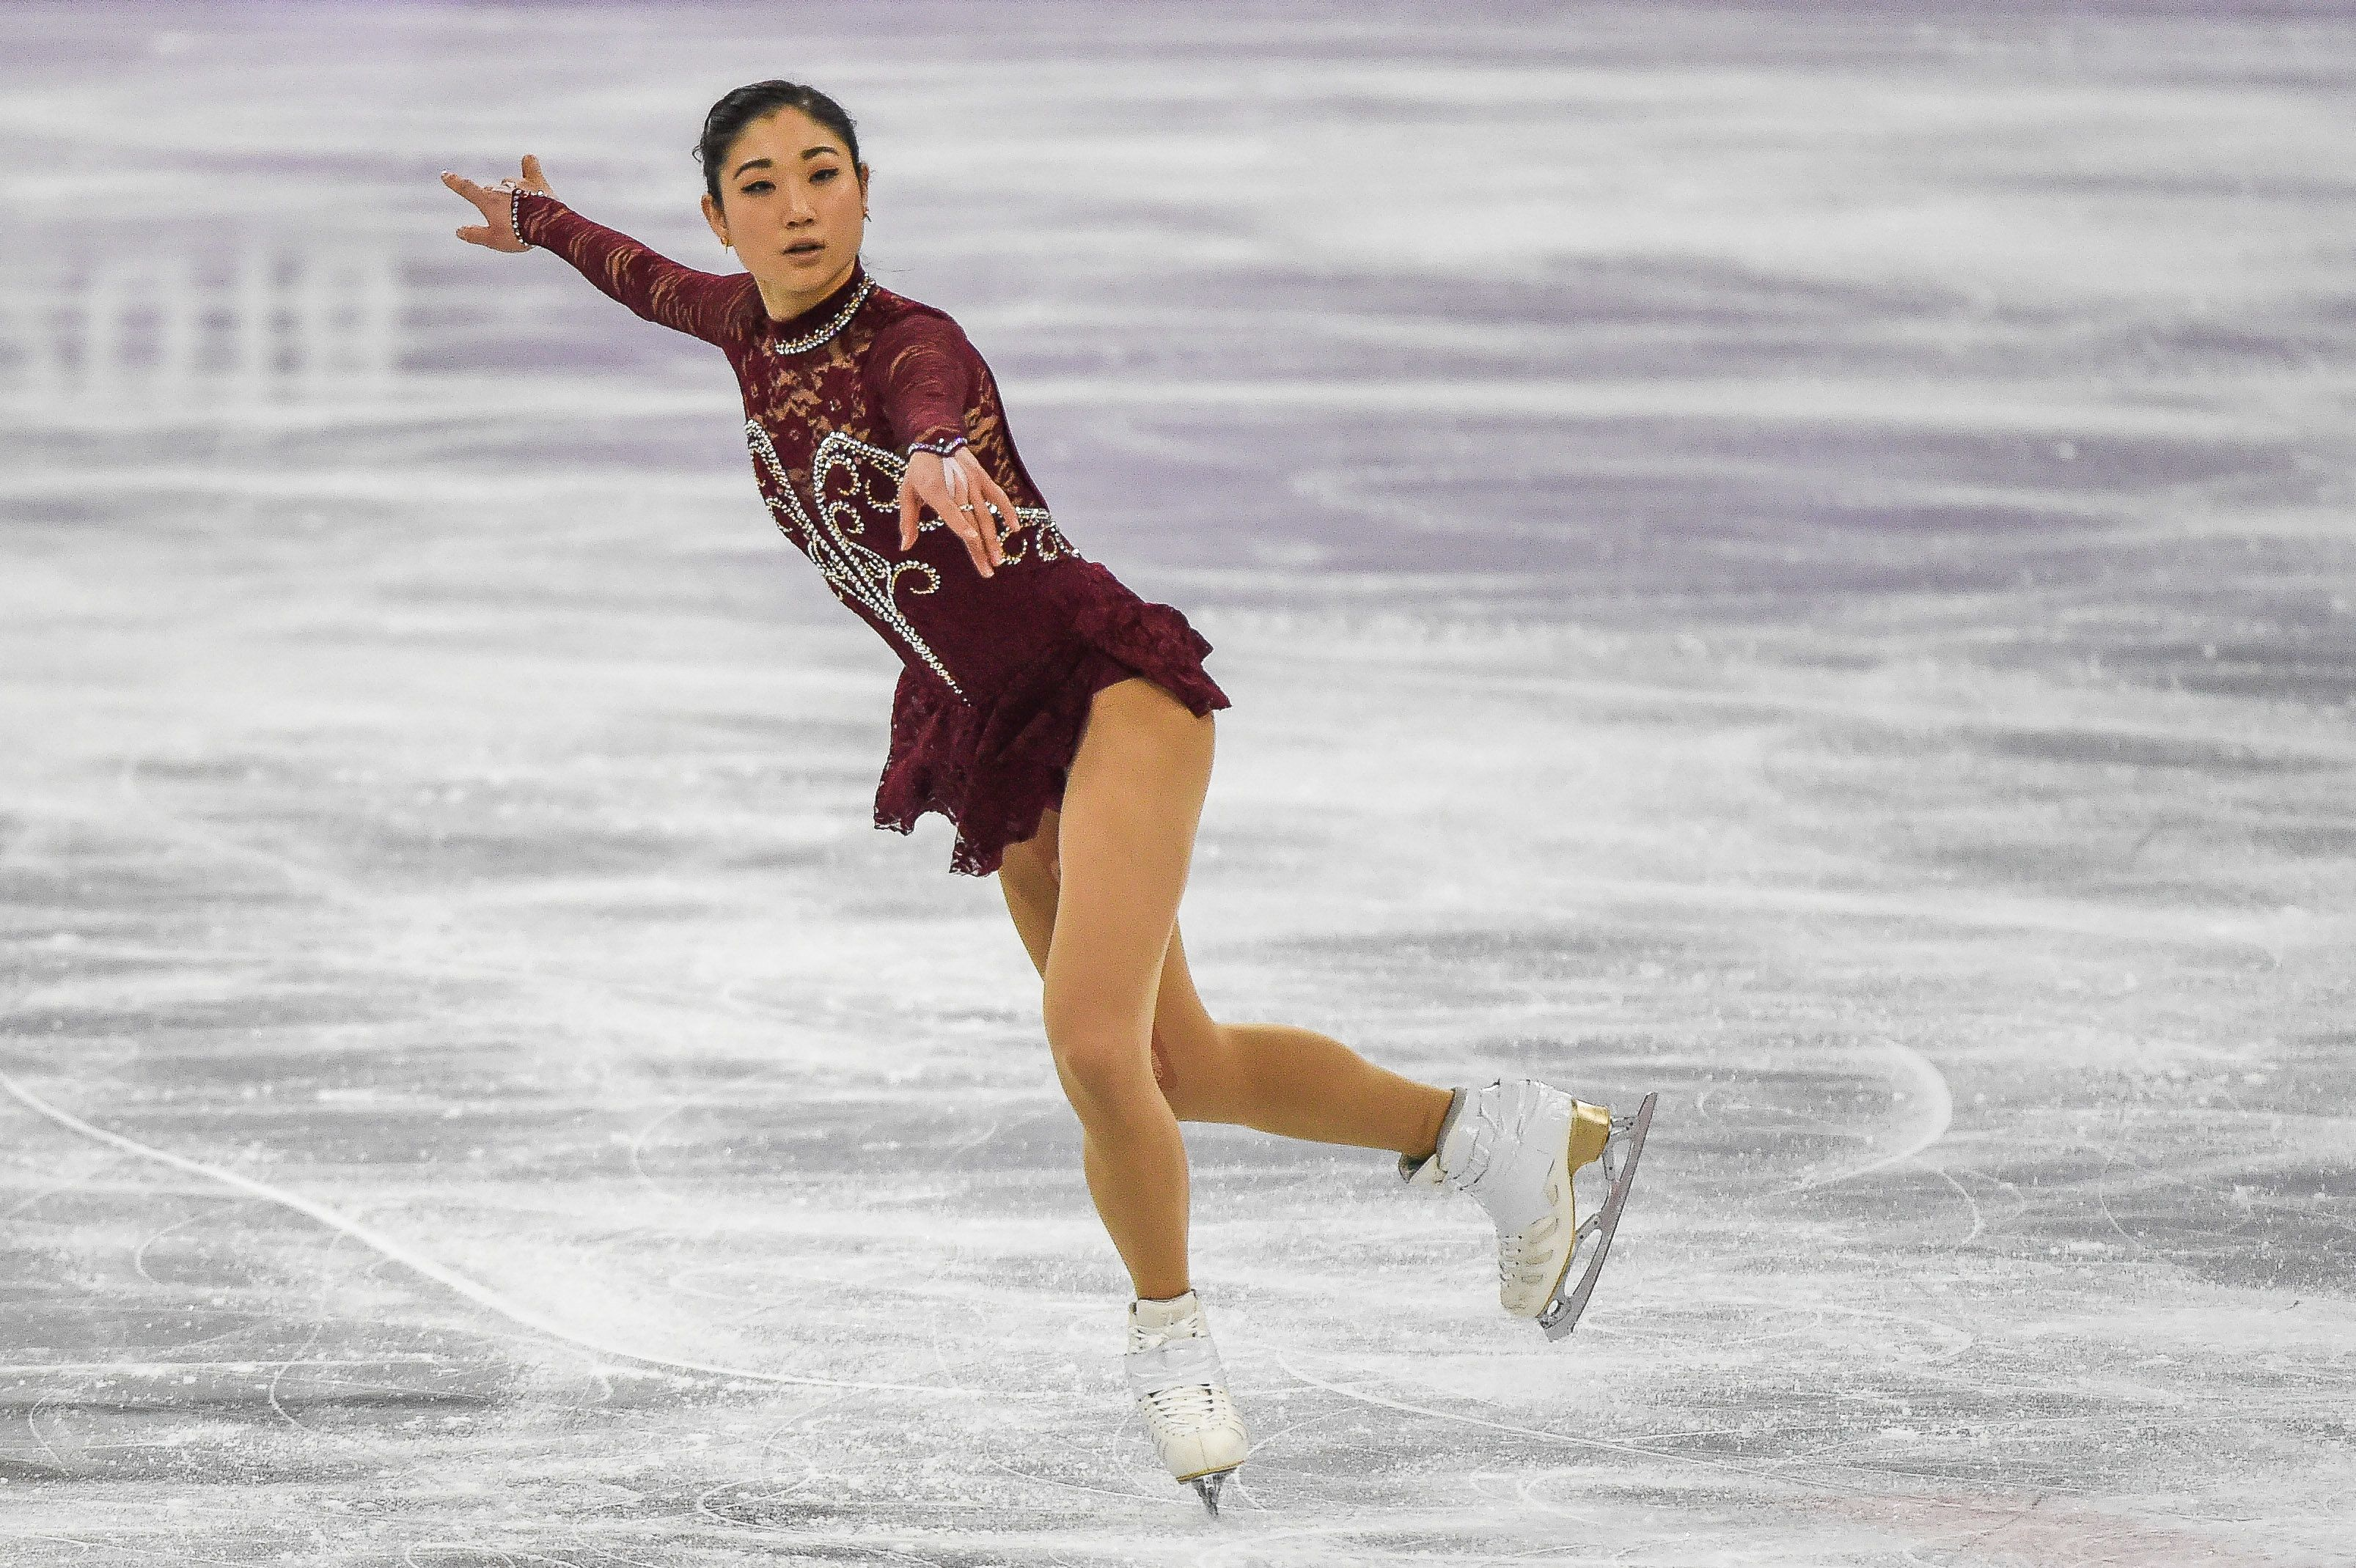 Mirai Nagasu is the first American woman to land a triple axel at the Winter Games.